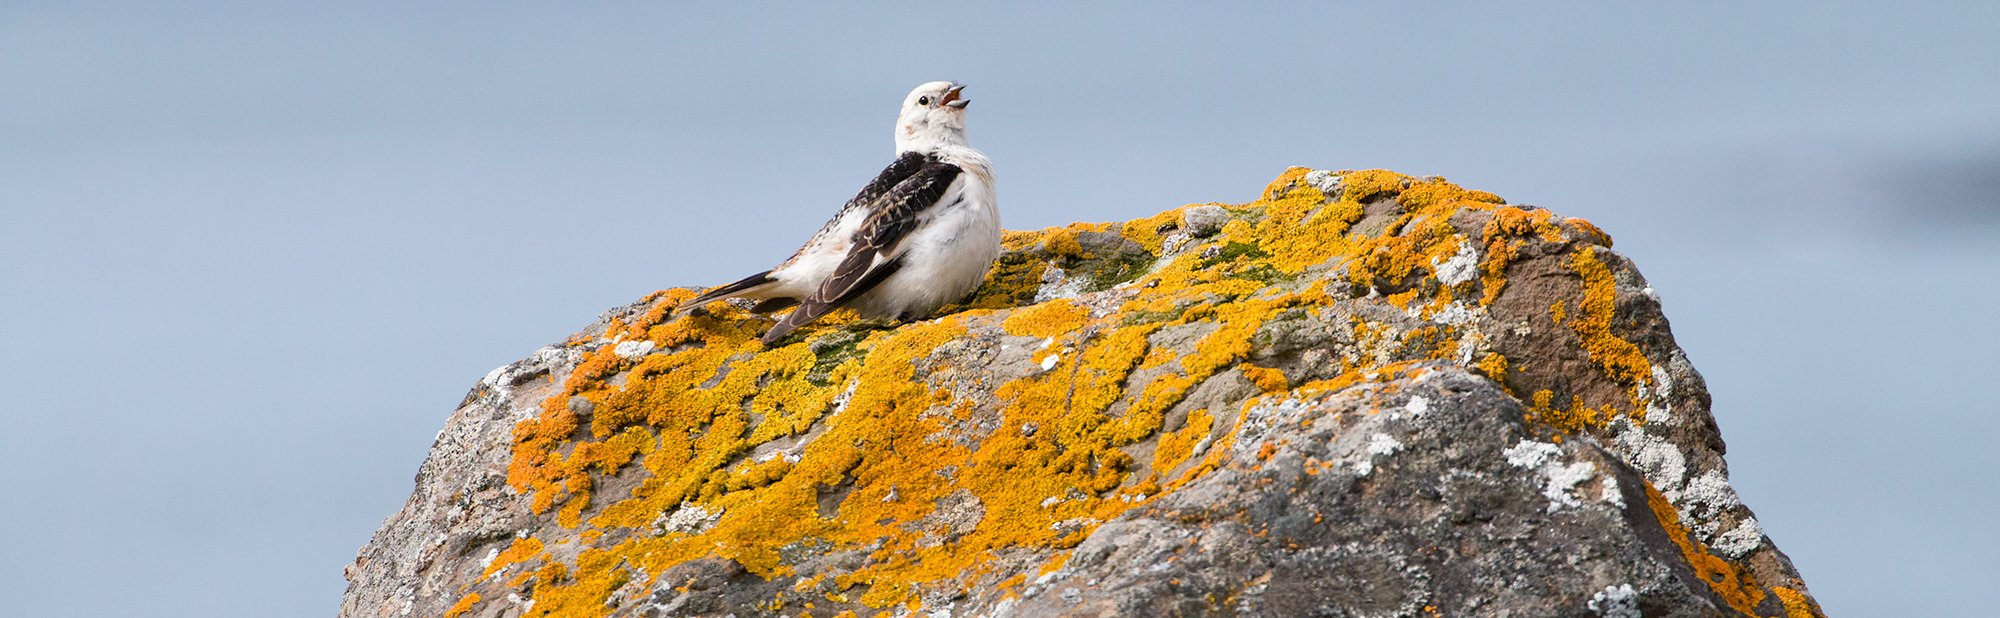 Male Snow Bunting singing